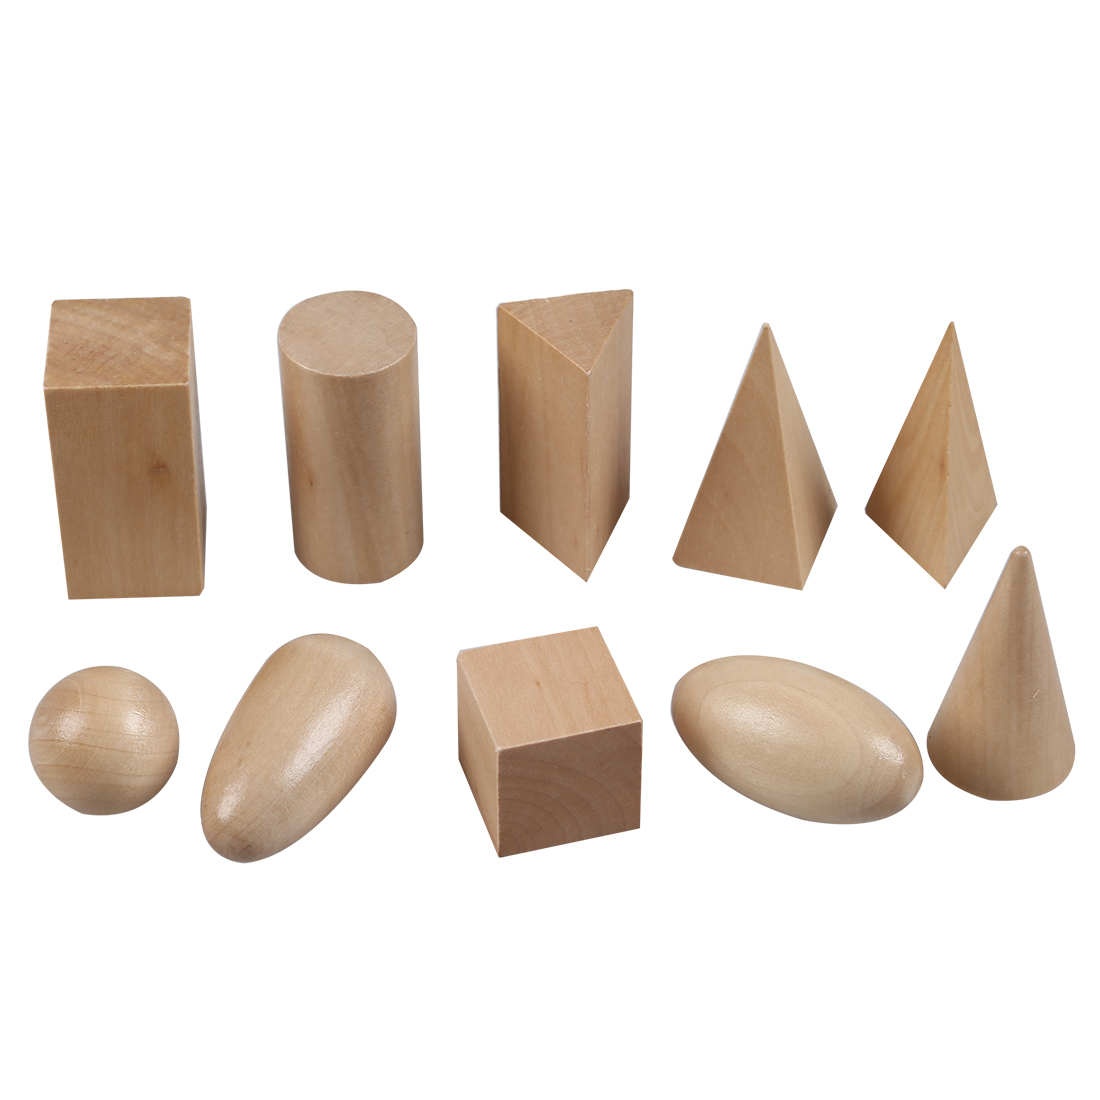 Popular Wooden Block Set Buy Cheap Wooden Block Set Lots From